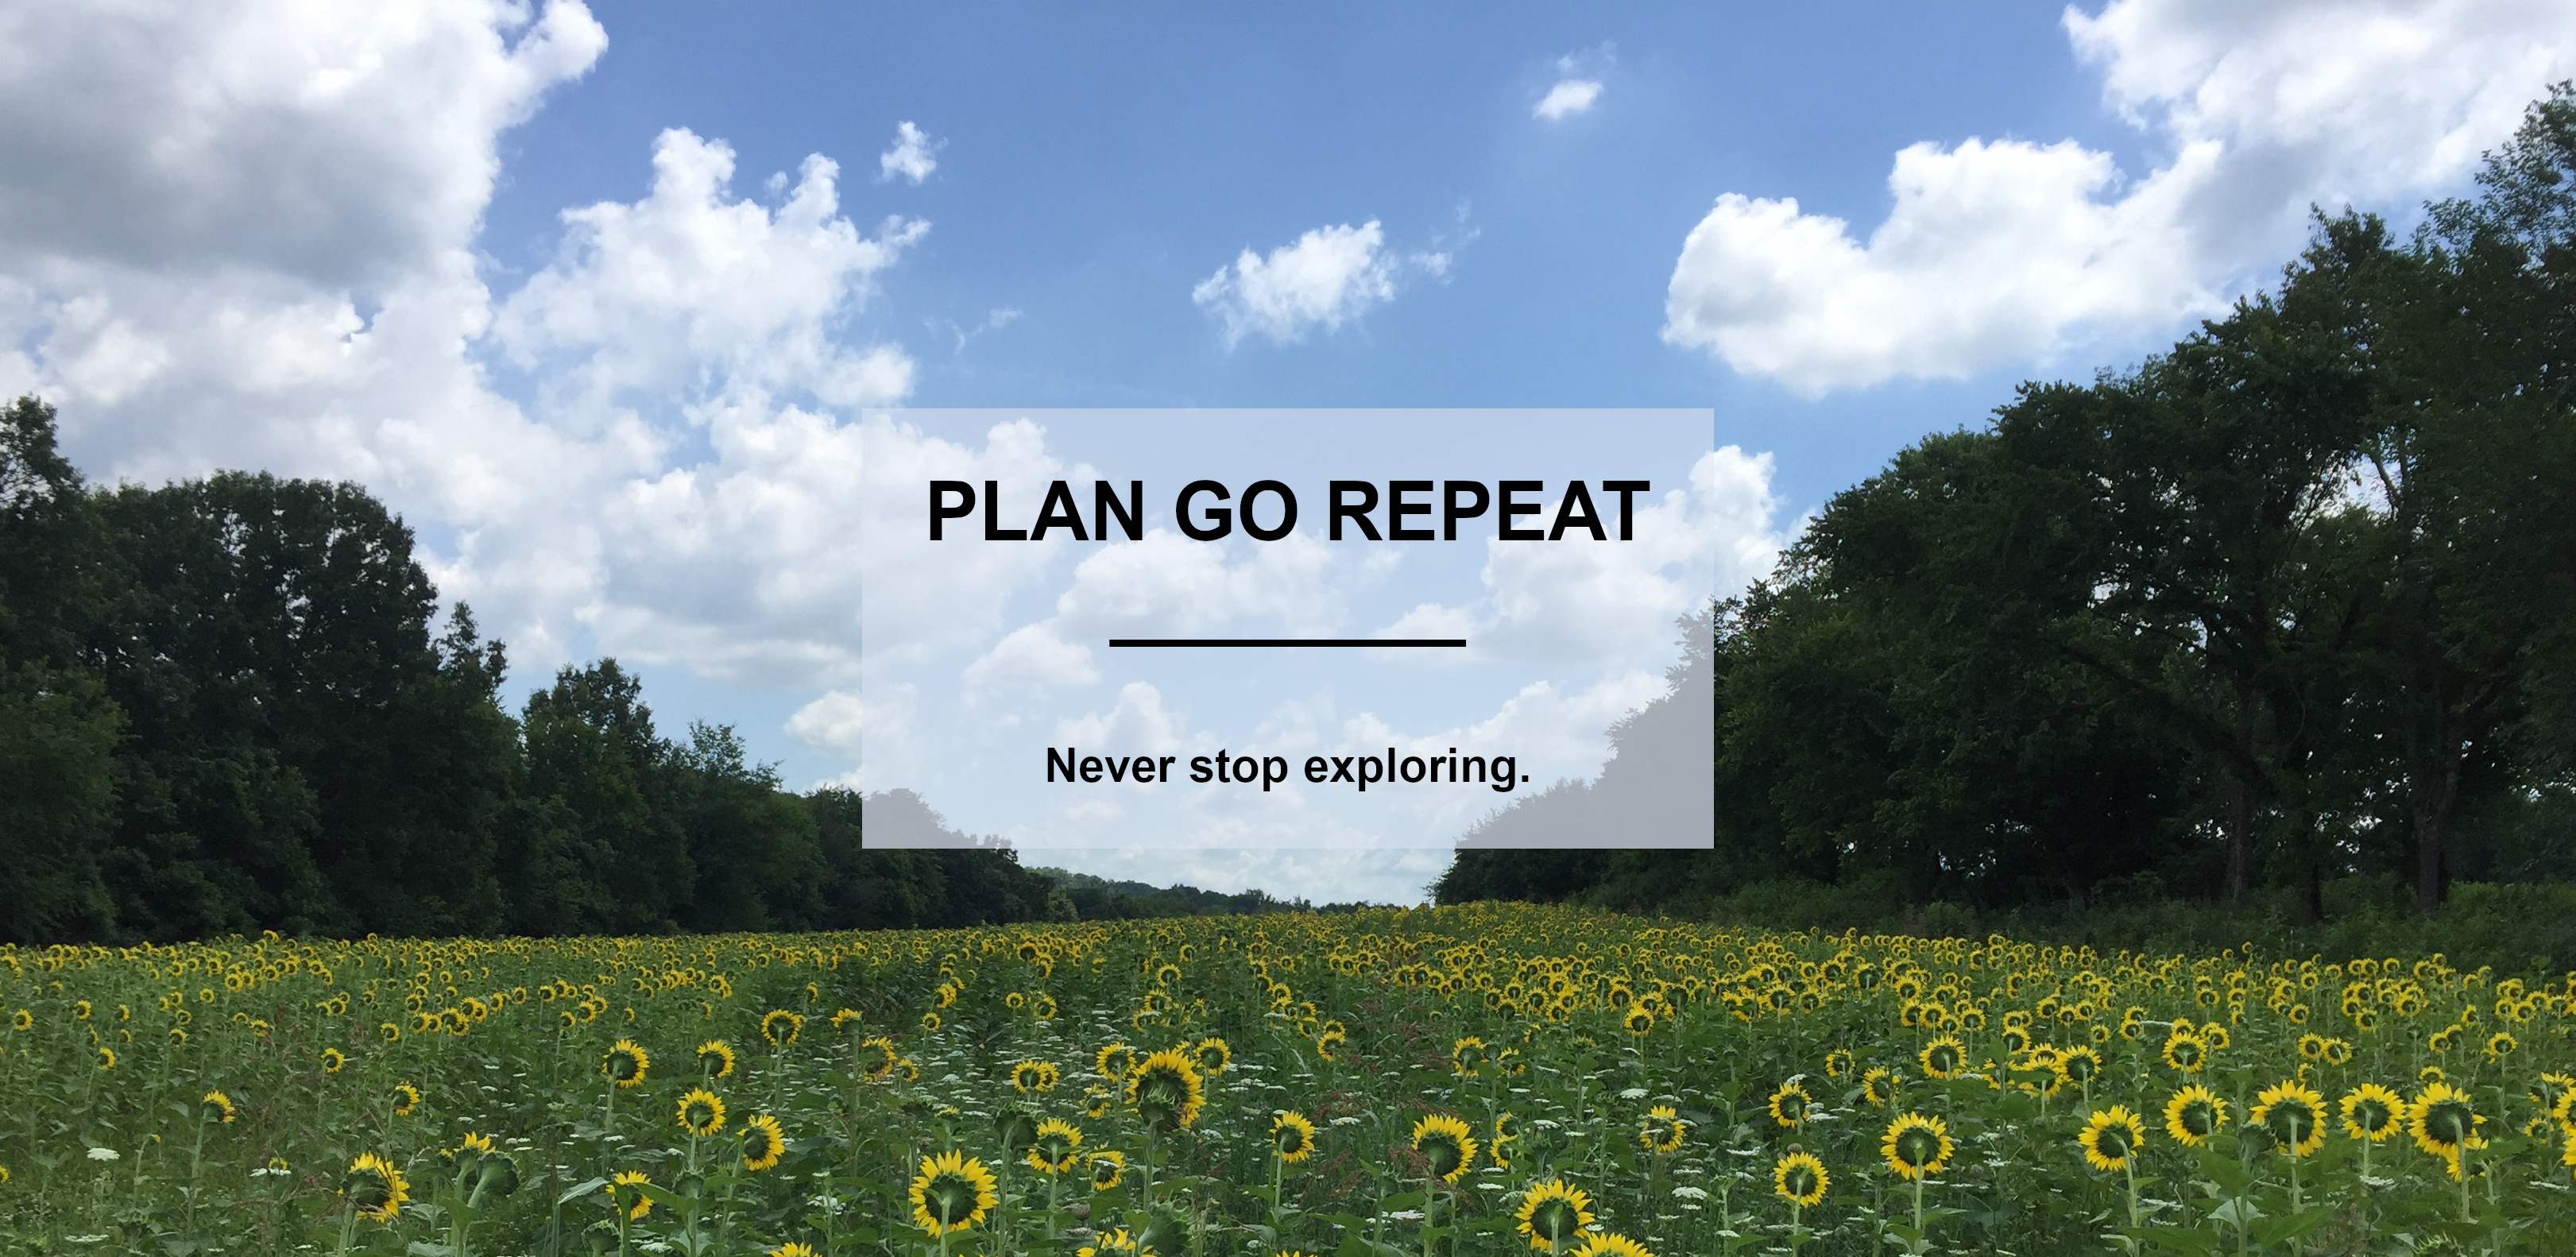 Plan Go Repeat